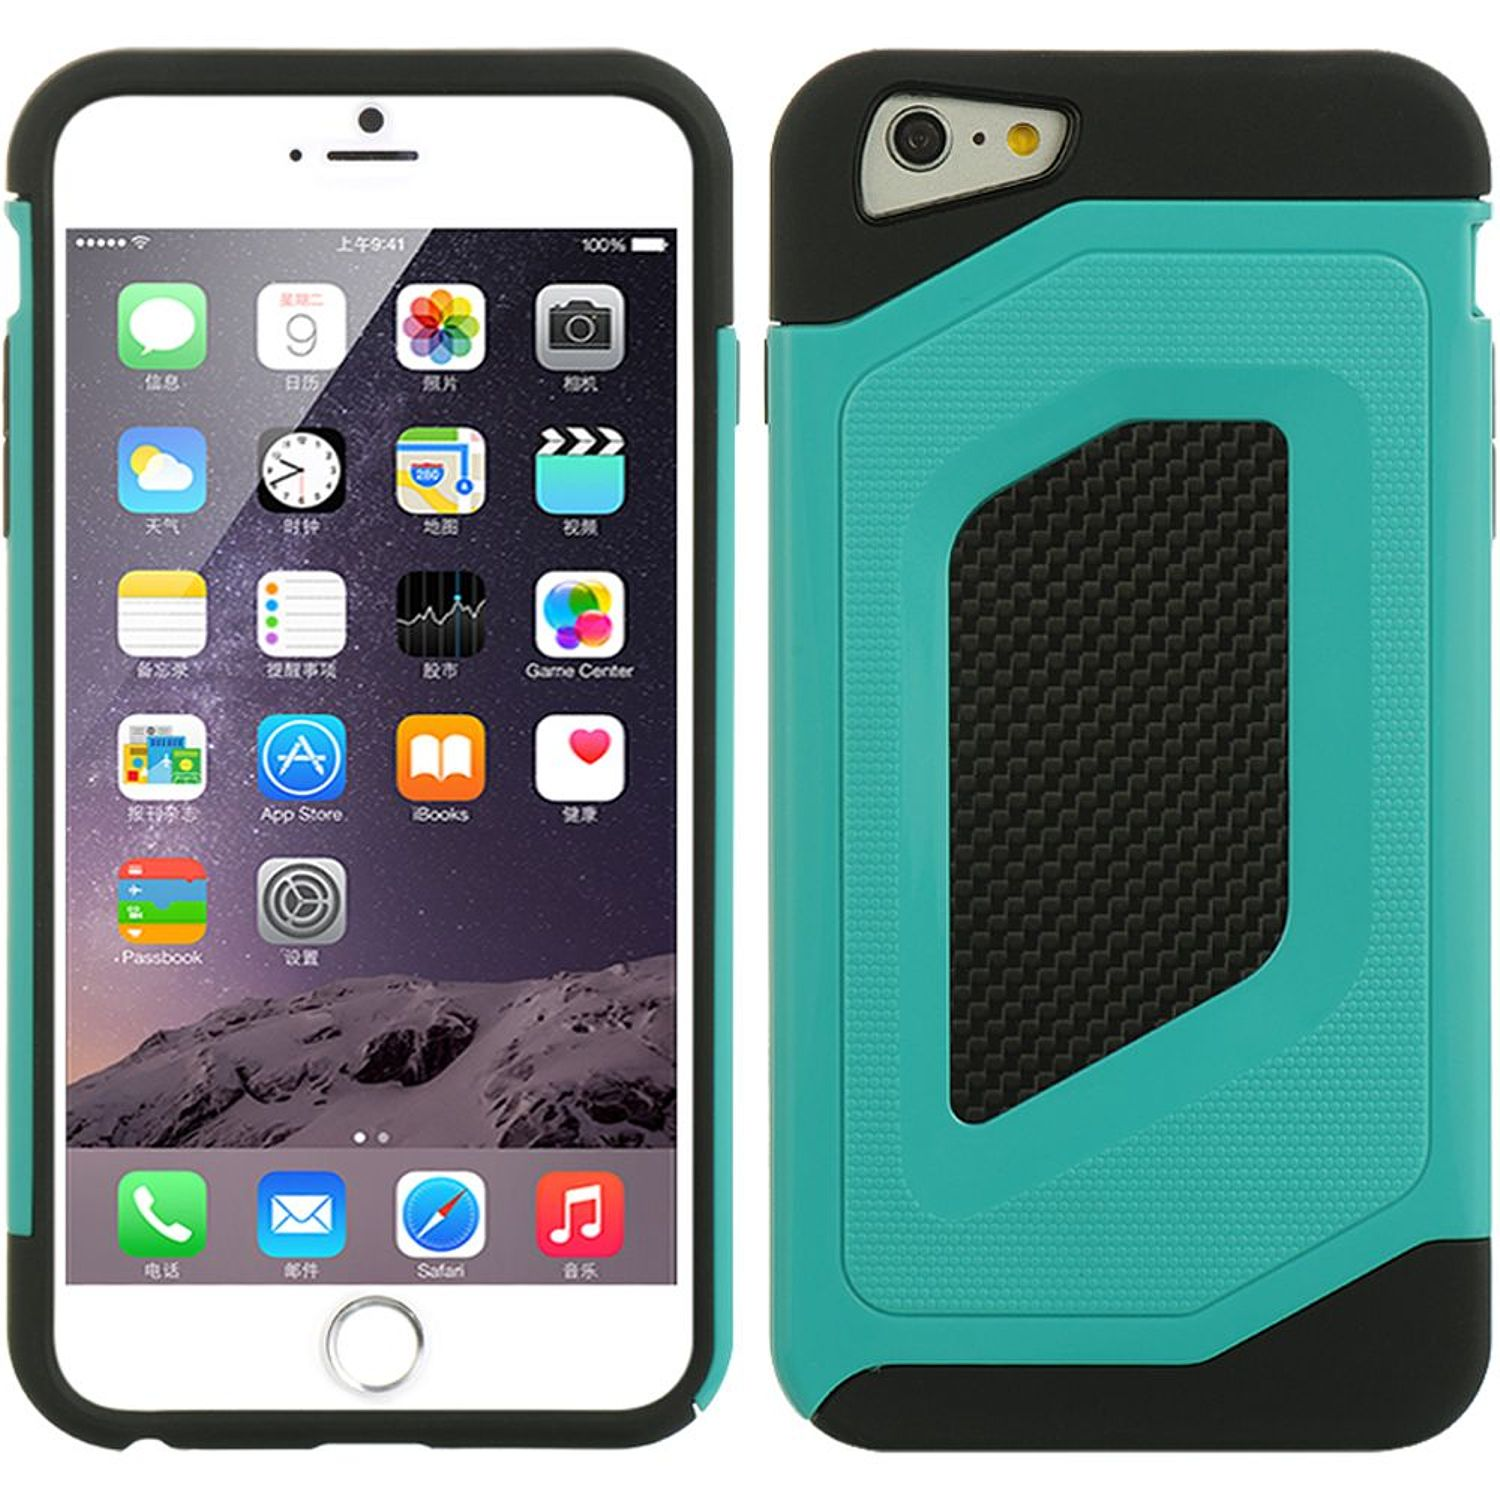 Apple iPhone 6 Plus/6s Plus Case, by DreamWireless Dual Layer Hybrid Hard Plastic/Soft TPU Rubber Case Cover For Apple iPhone 6 Plus/6s Plus, Black/Green